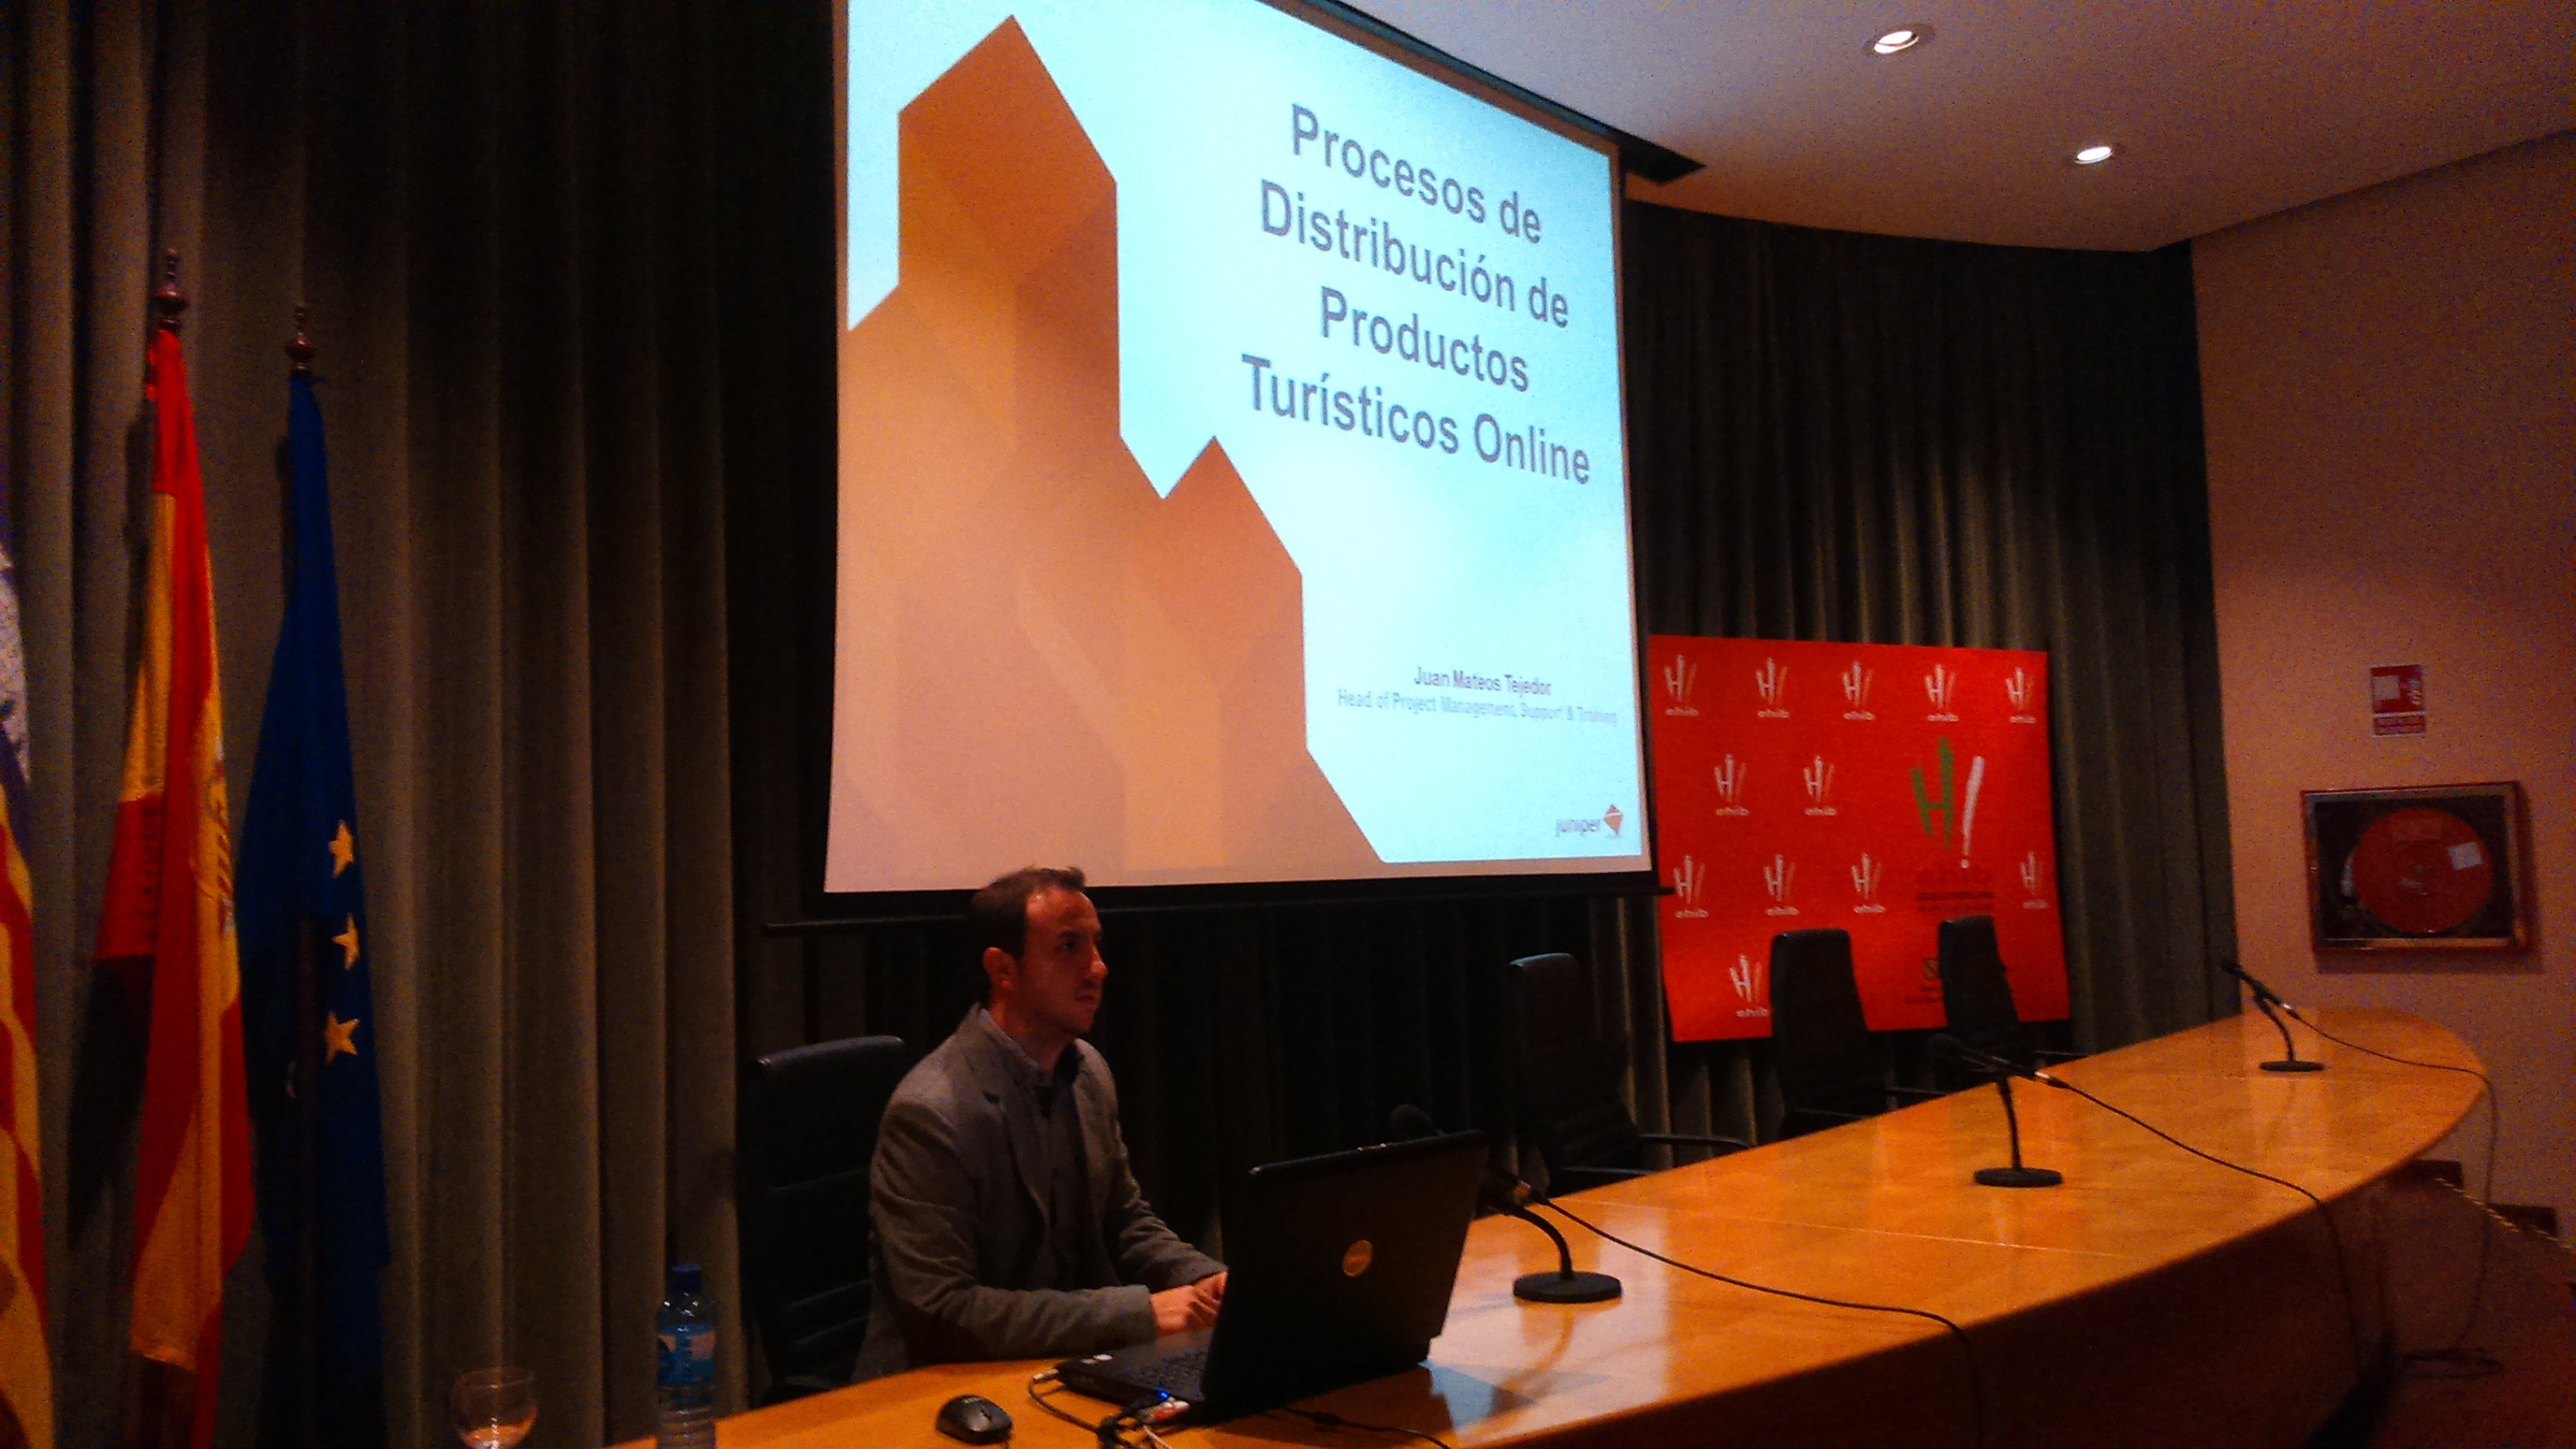 Juan Mateos speaks at the Faculty of Hospitality and Tourism